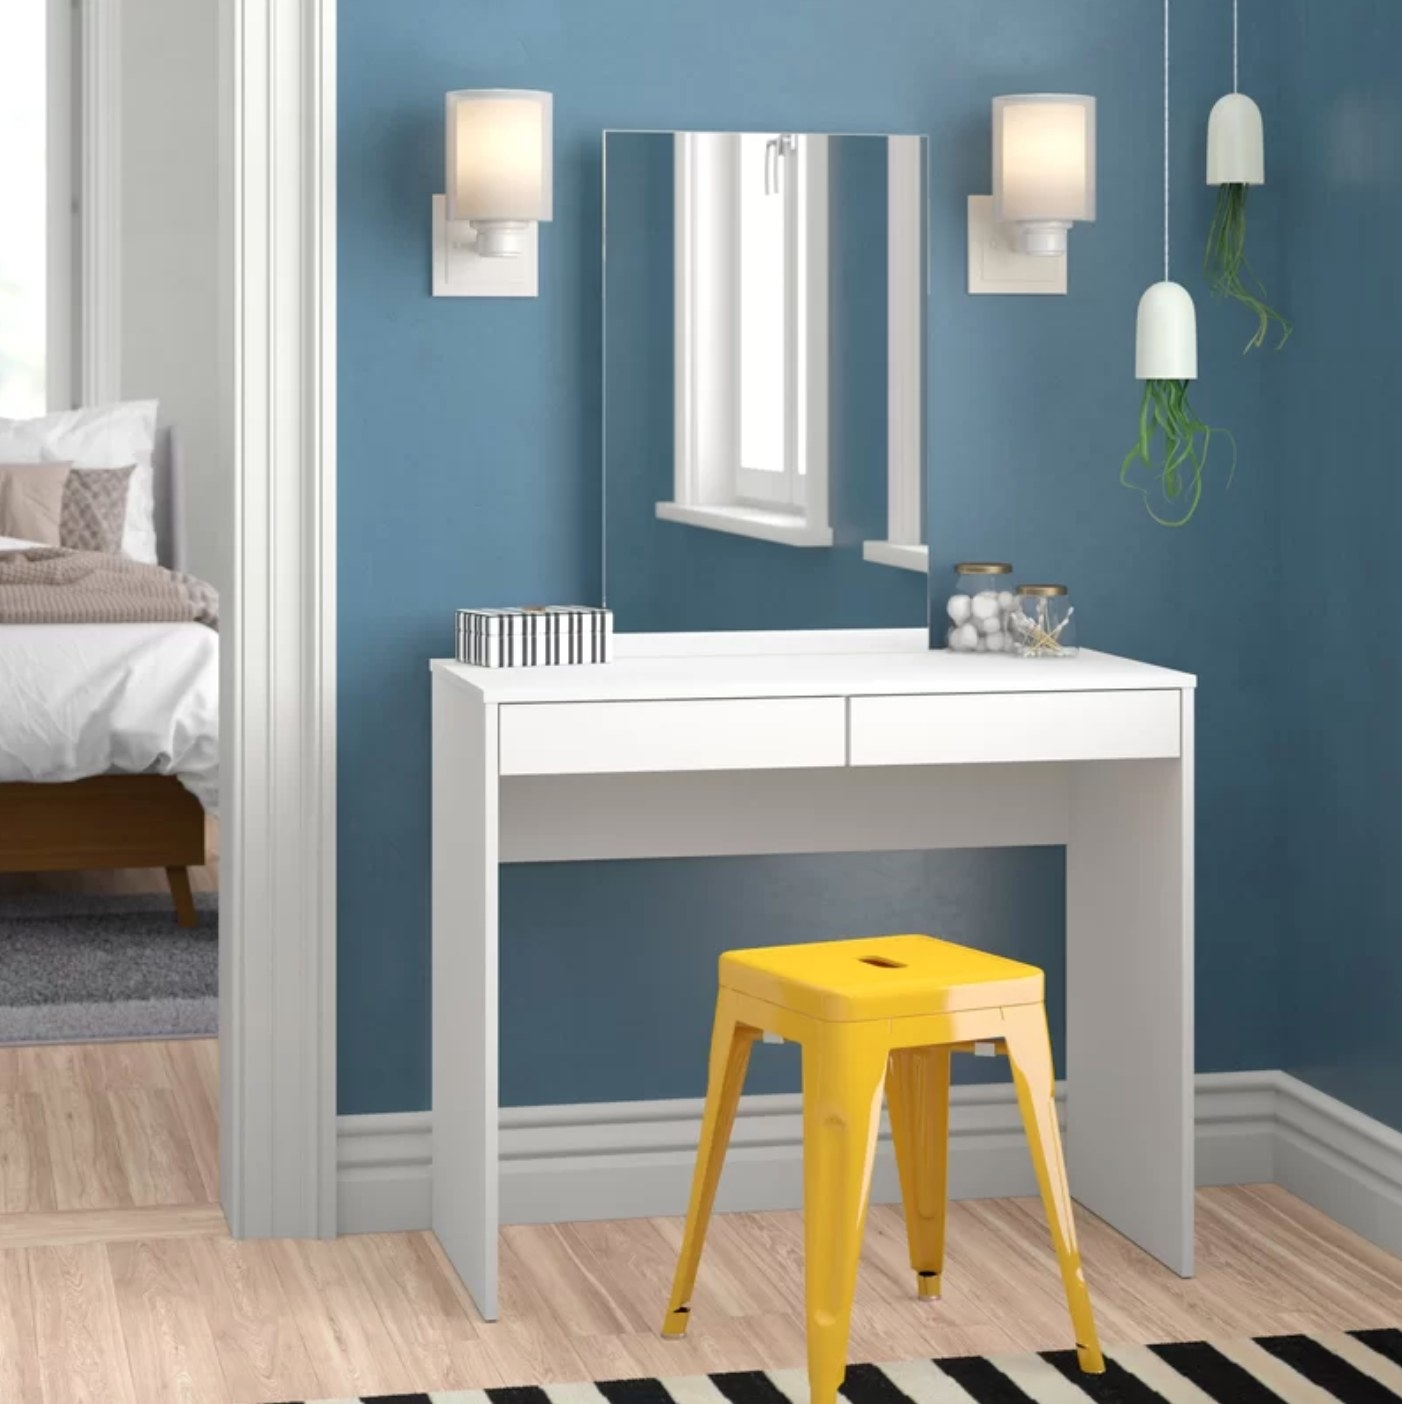 The vanity with a mirror attachment with a yellow stool